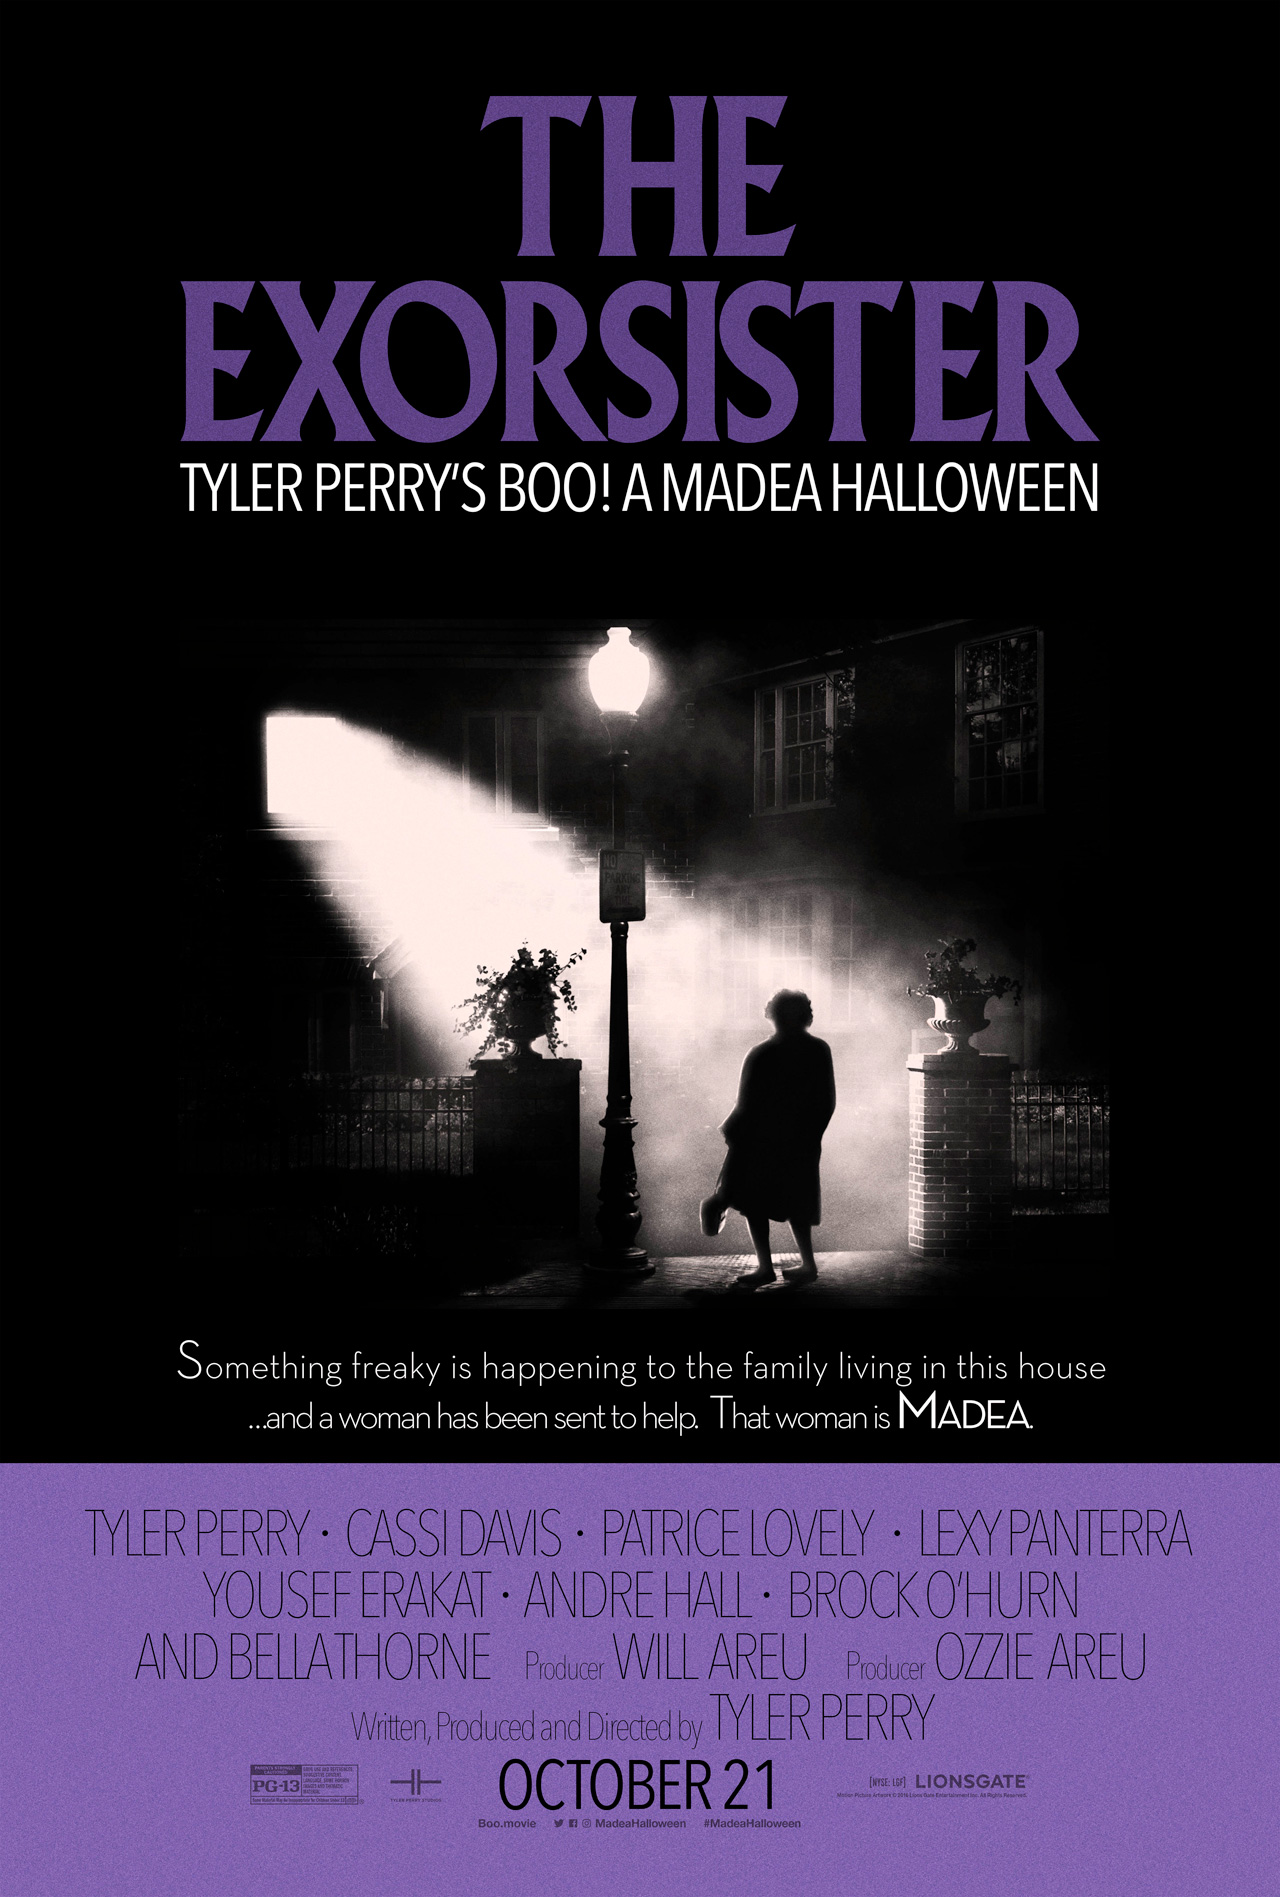 An Exorcist Poster To Tyler Perry's Boo! A Madea Halloween ...